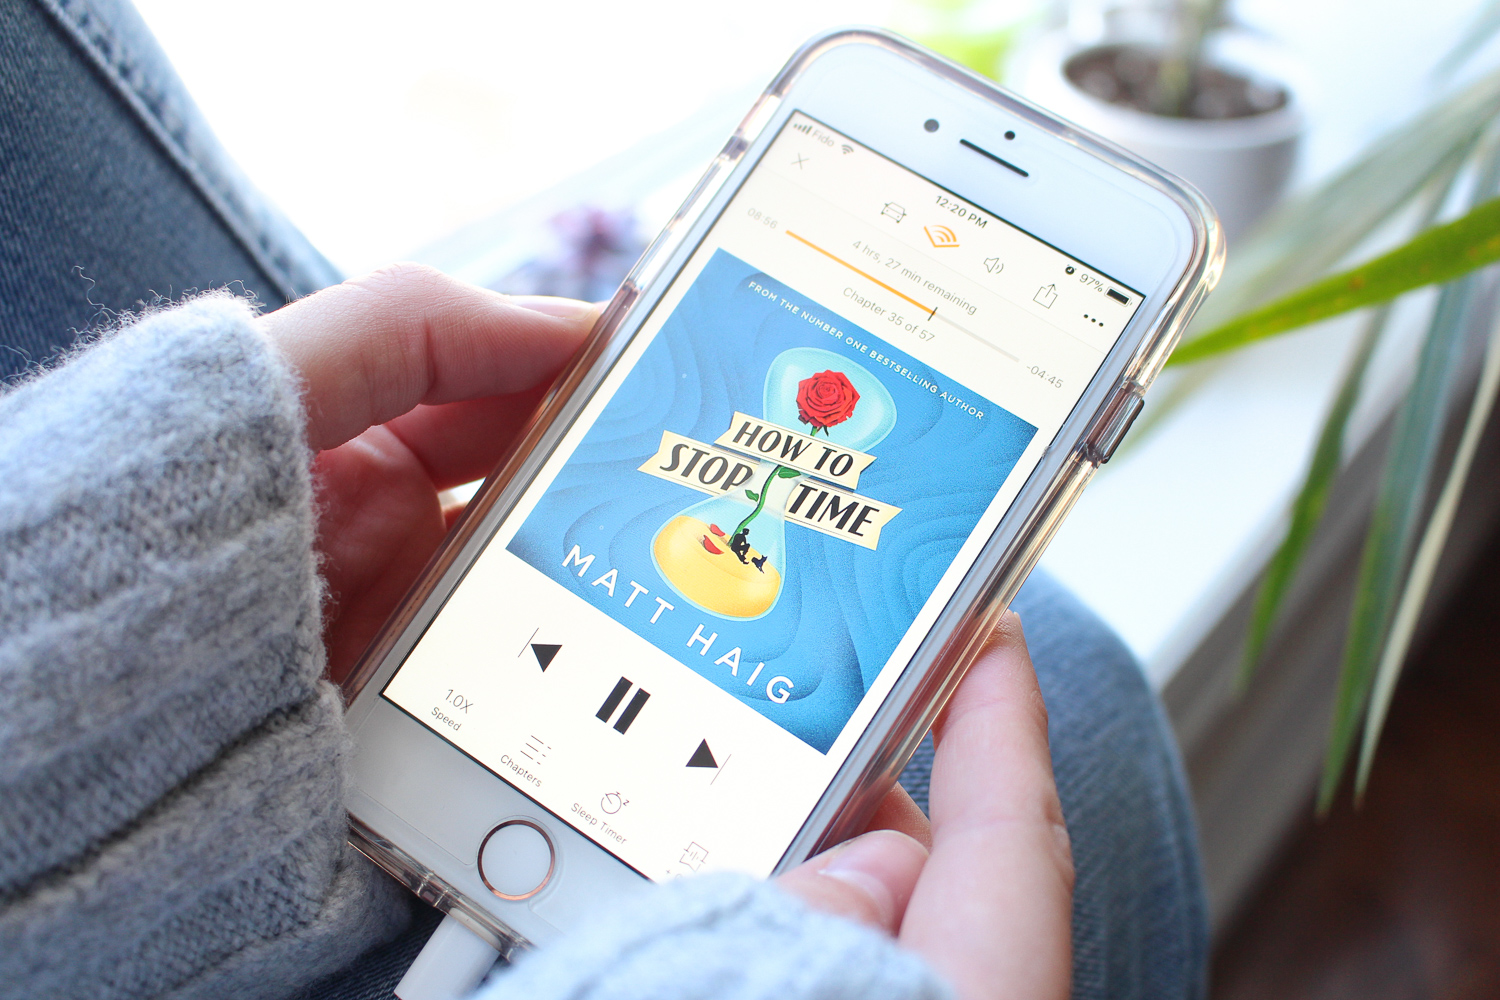 my first experience with audio books | prettynaive